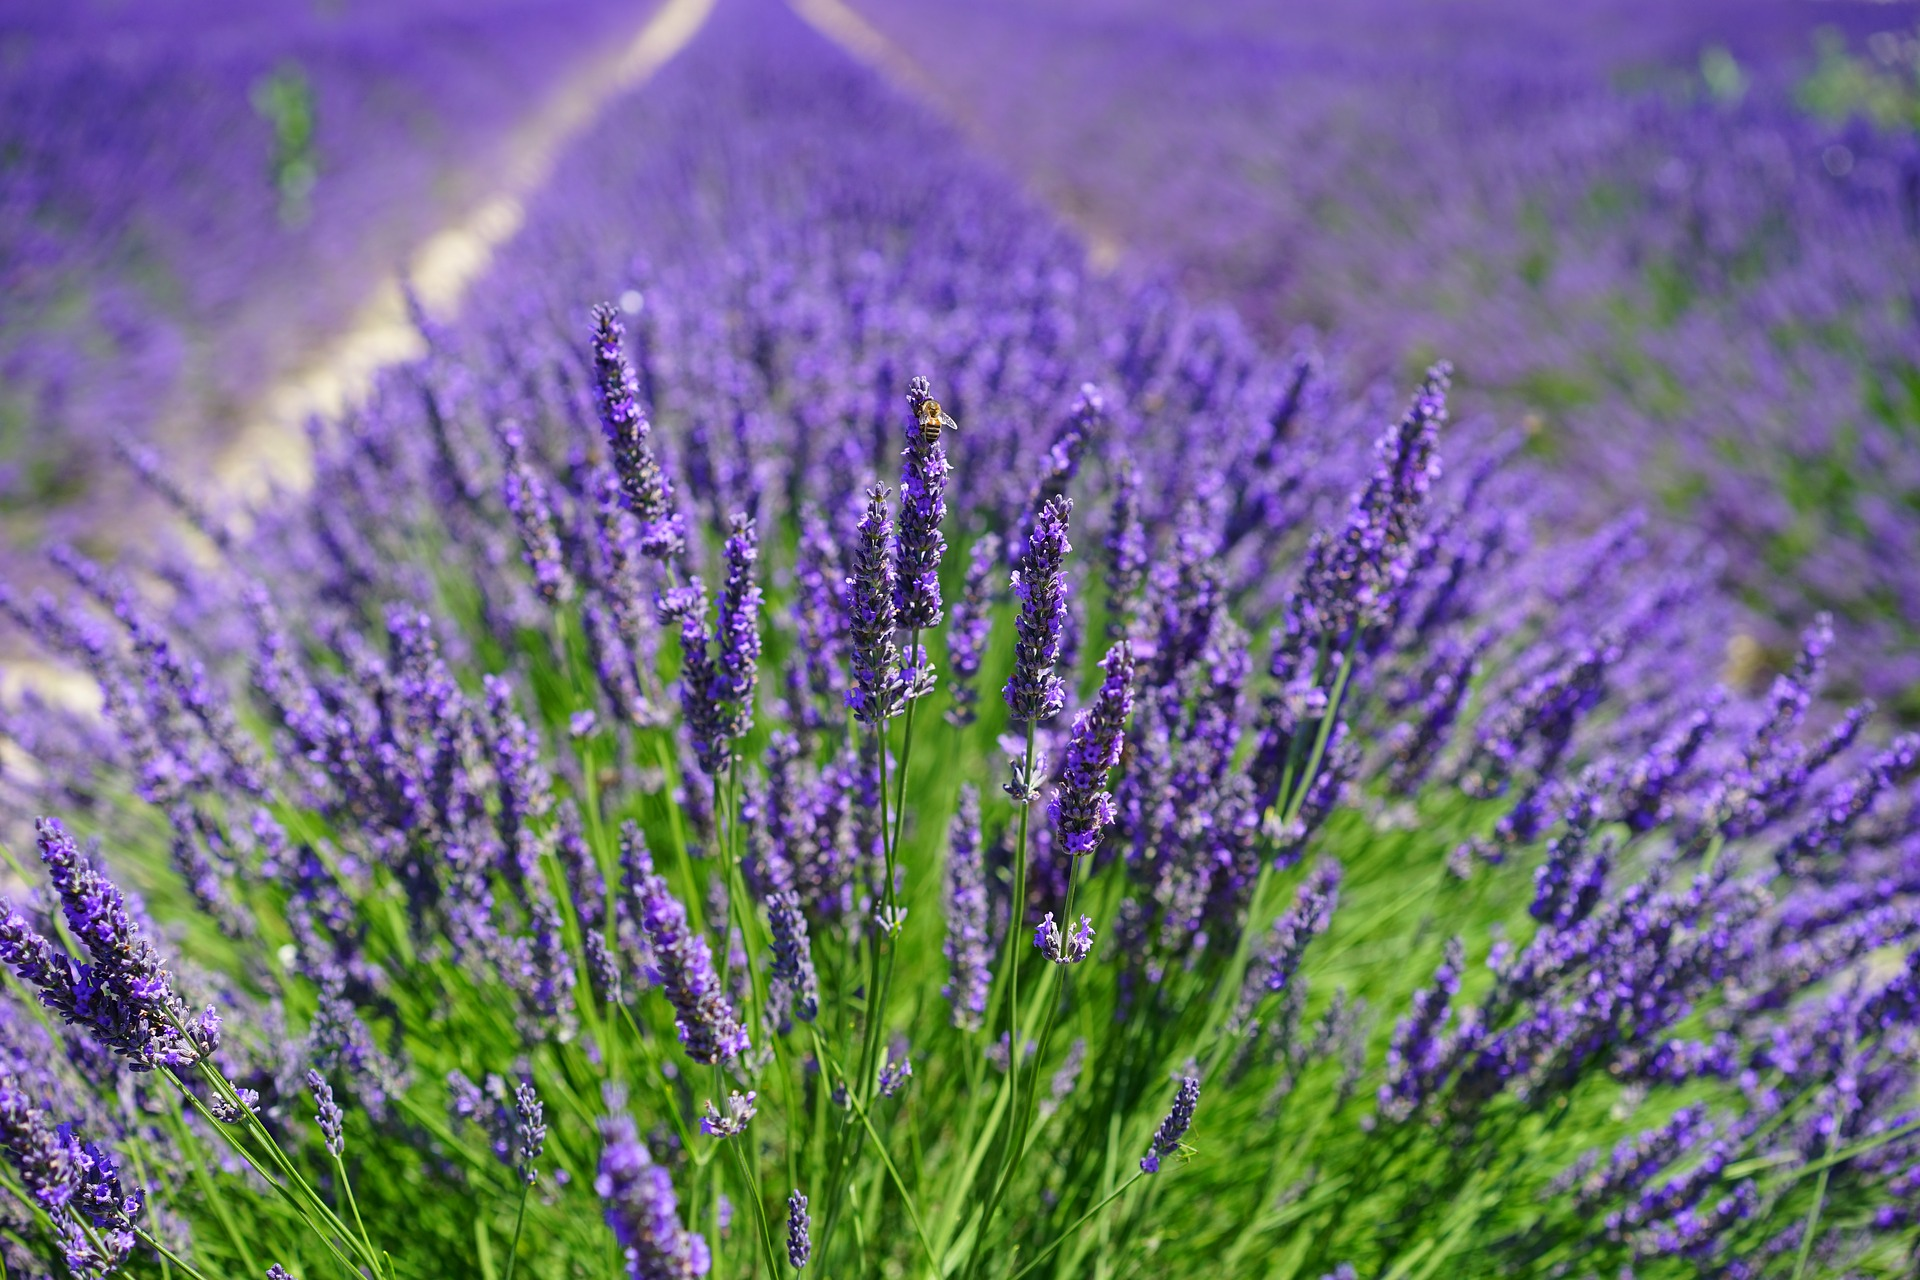 Lavender How To Plant Grow And Care For Lavender The Old Farmer S Almanac